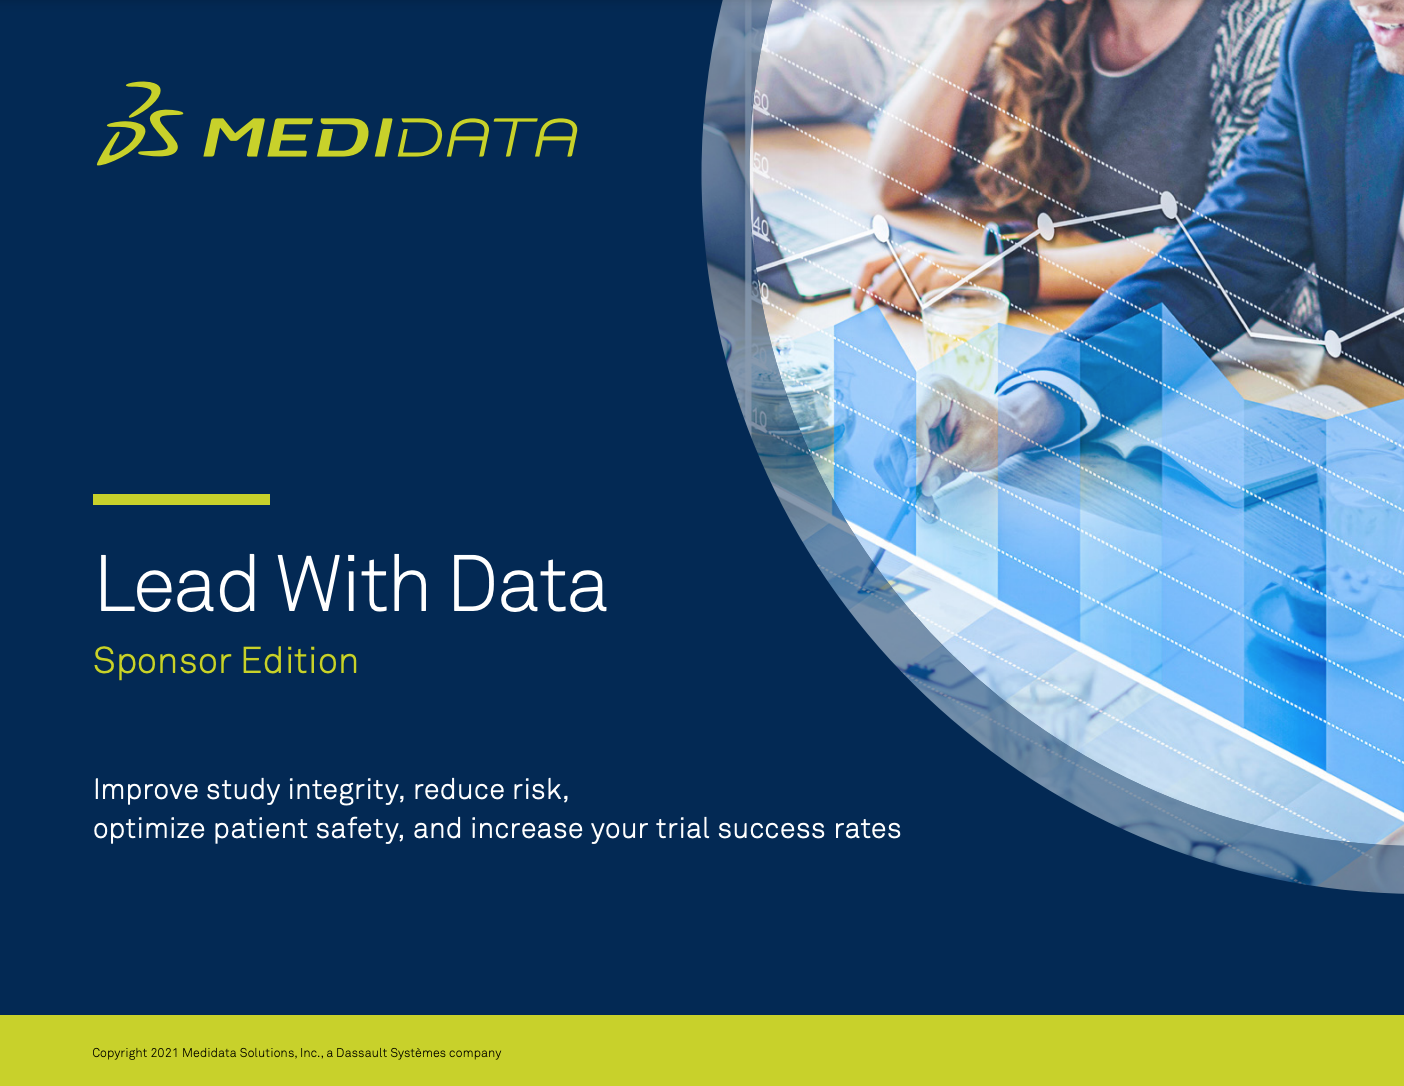 <strong>Lead with Data</strong><br>Sponsor Edition